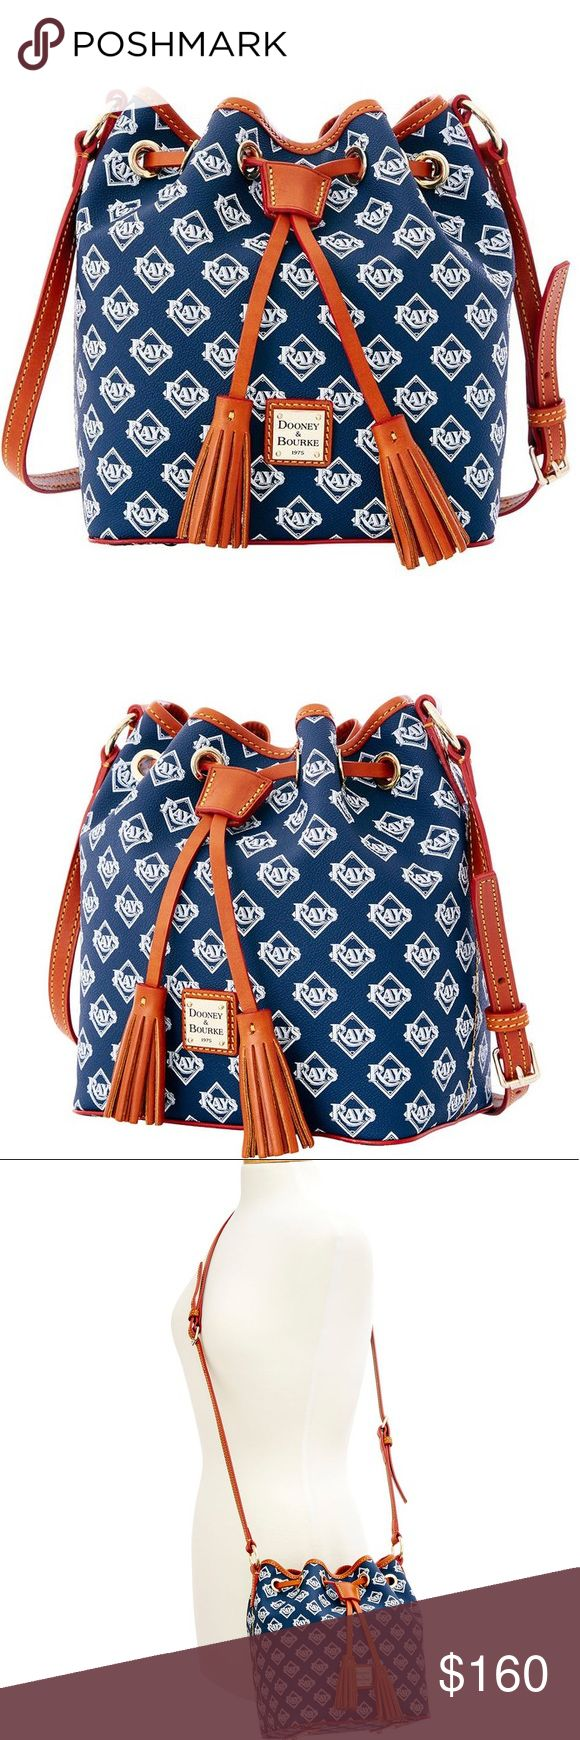 "💕👜Just in Dooney&Bourke MLB Rays Kendall👜💕 Let's go, Rays! Shop officially licensed bags and support your team in style. A scaled down version of the classic Kendall. The Kendall Crossbody is sporty enough to carry on weekends, and stylish enough to take out at night. One inside zip pocket. Cell phone pocket. Inside key hook. Adjustable strap. Strap drop length 25"". Lined. Feet. Drawstring. Feet. Tampa Bay Rays. Check out my closet for more amazing brand new items.👍👜😊💕💕💕 Dooney…"